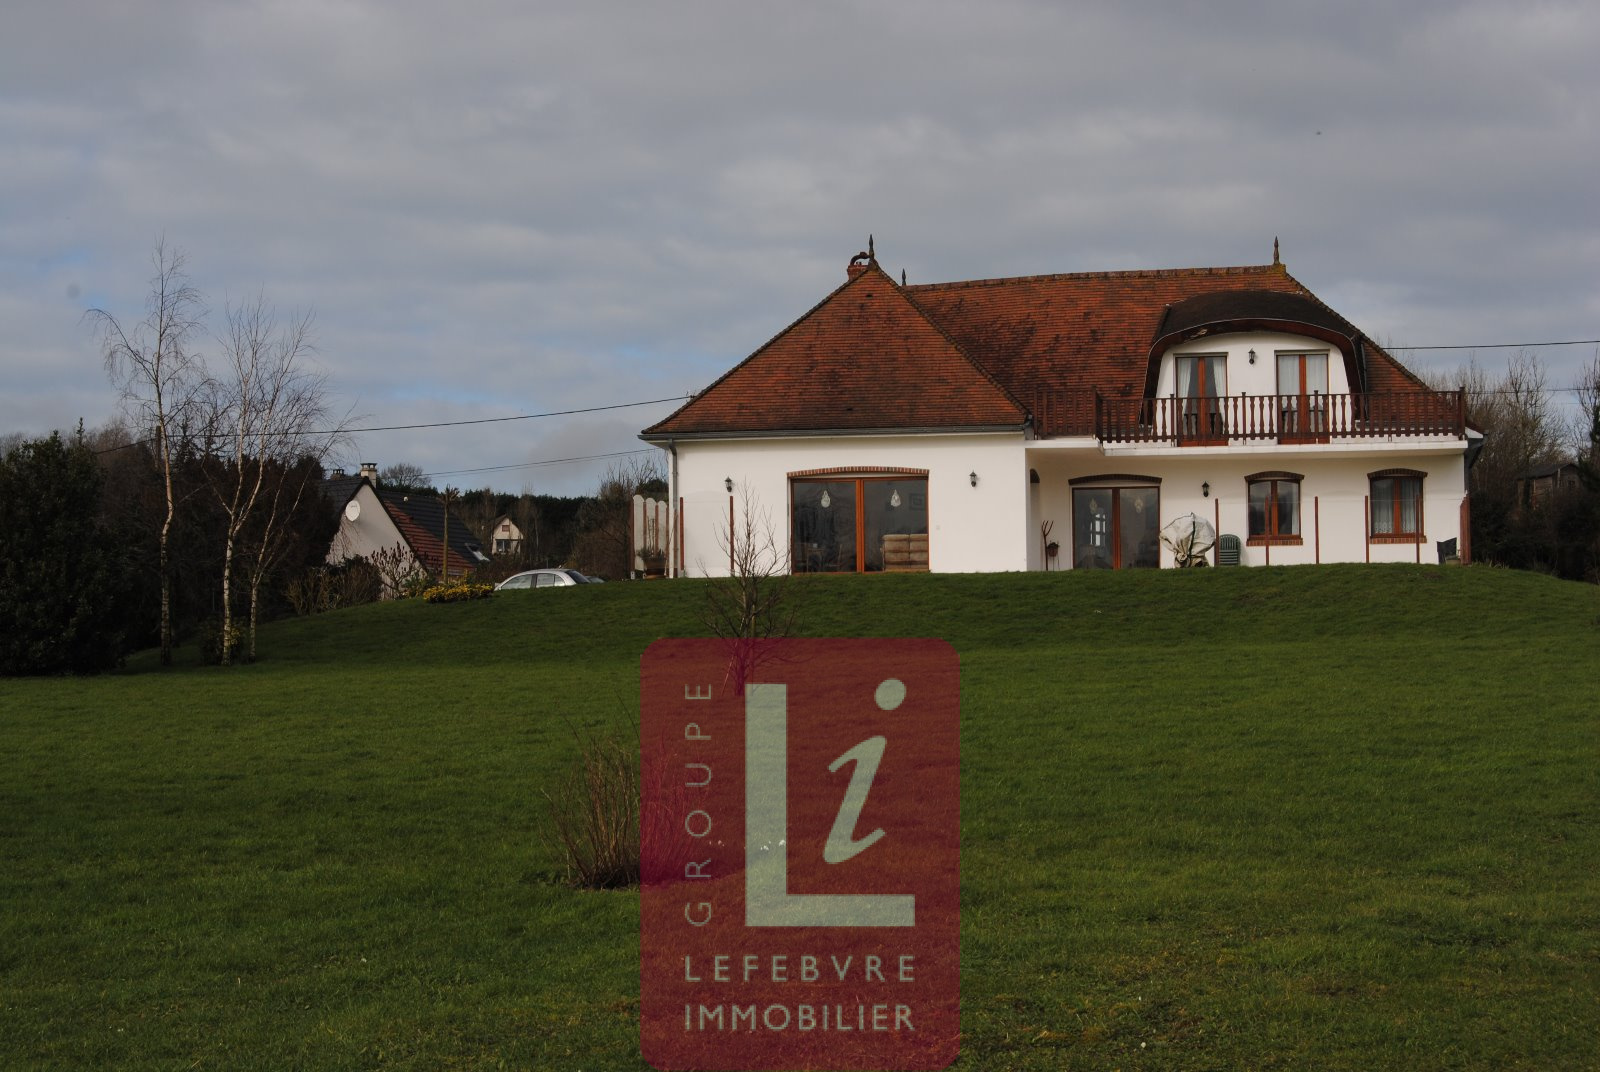 Immobilier hesdin l abbe location et vente appartement for Site immobilier vente